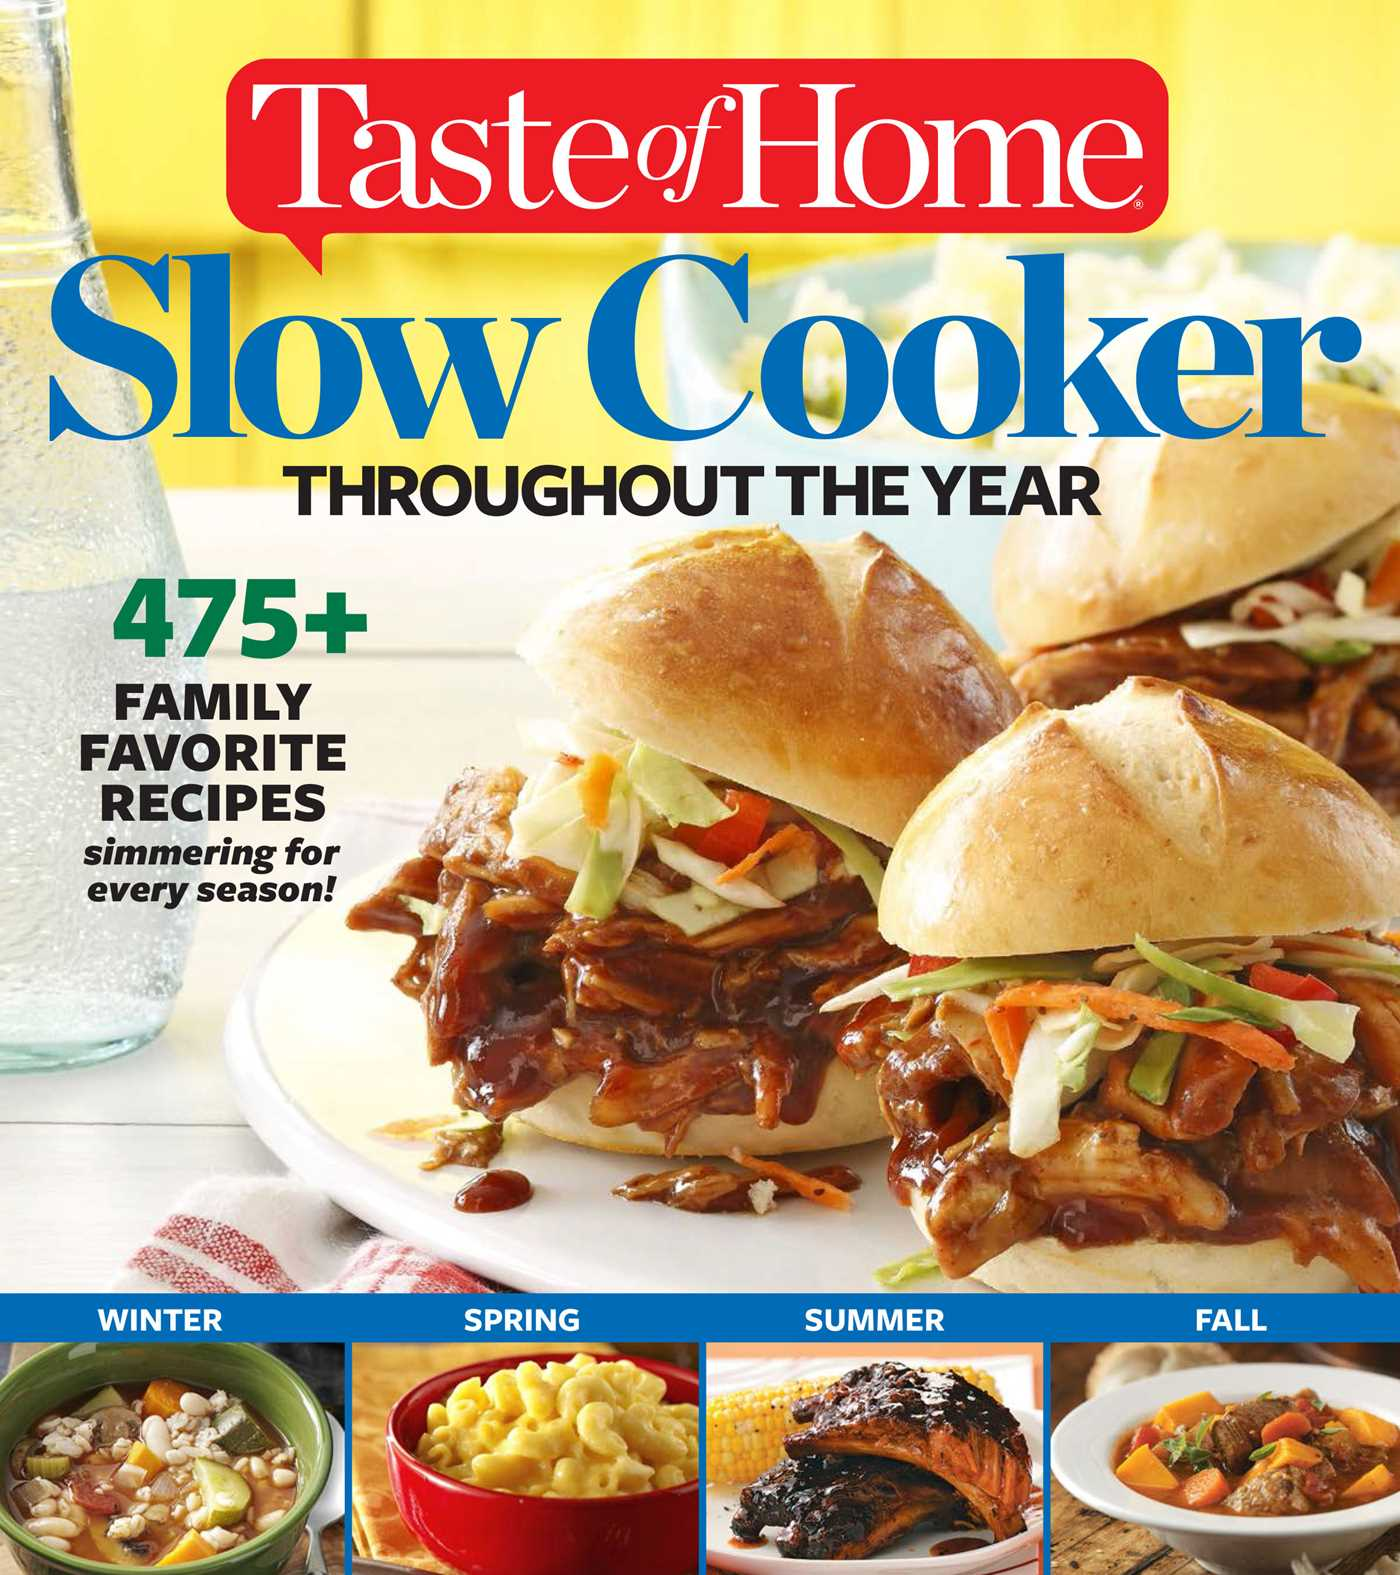 Taste of home slow cooker throughout the year 9781617653452 hr